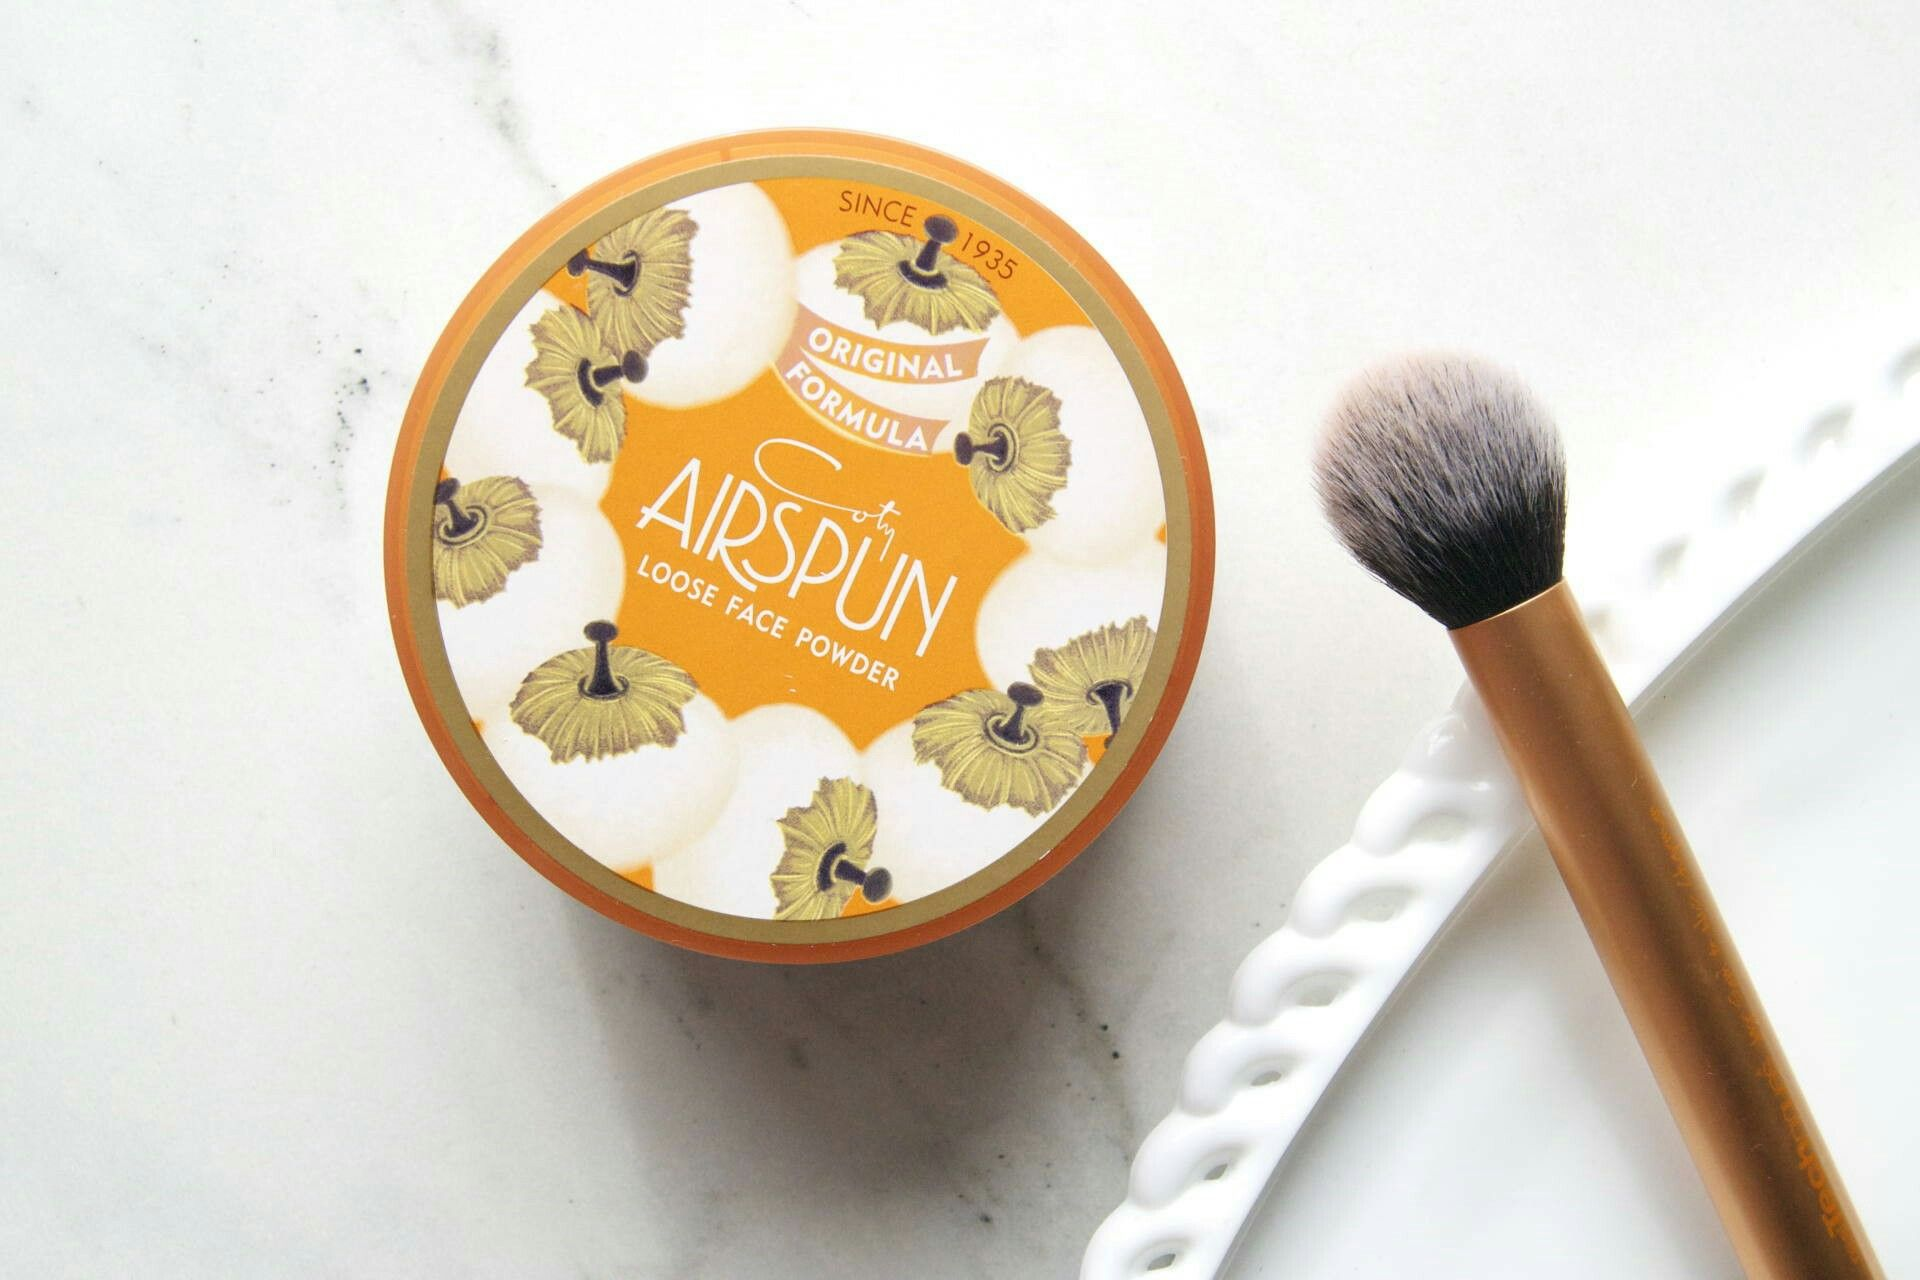 Coty Airspun Loose Face Powder.. Can only find this at